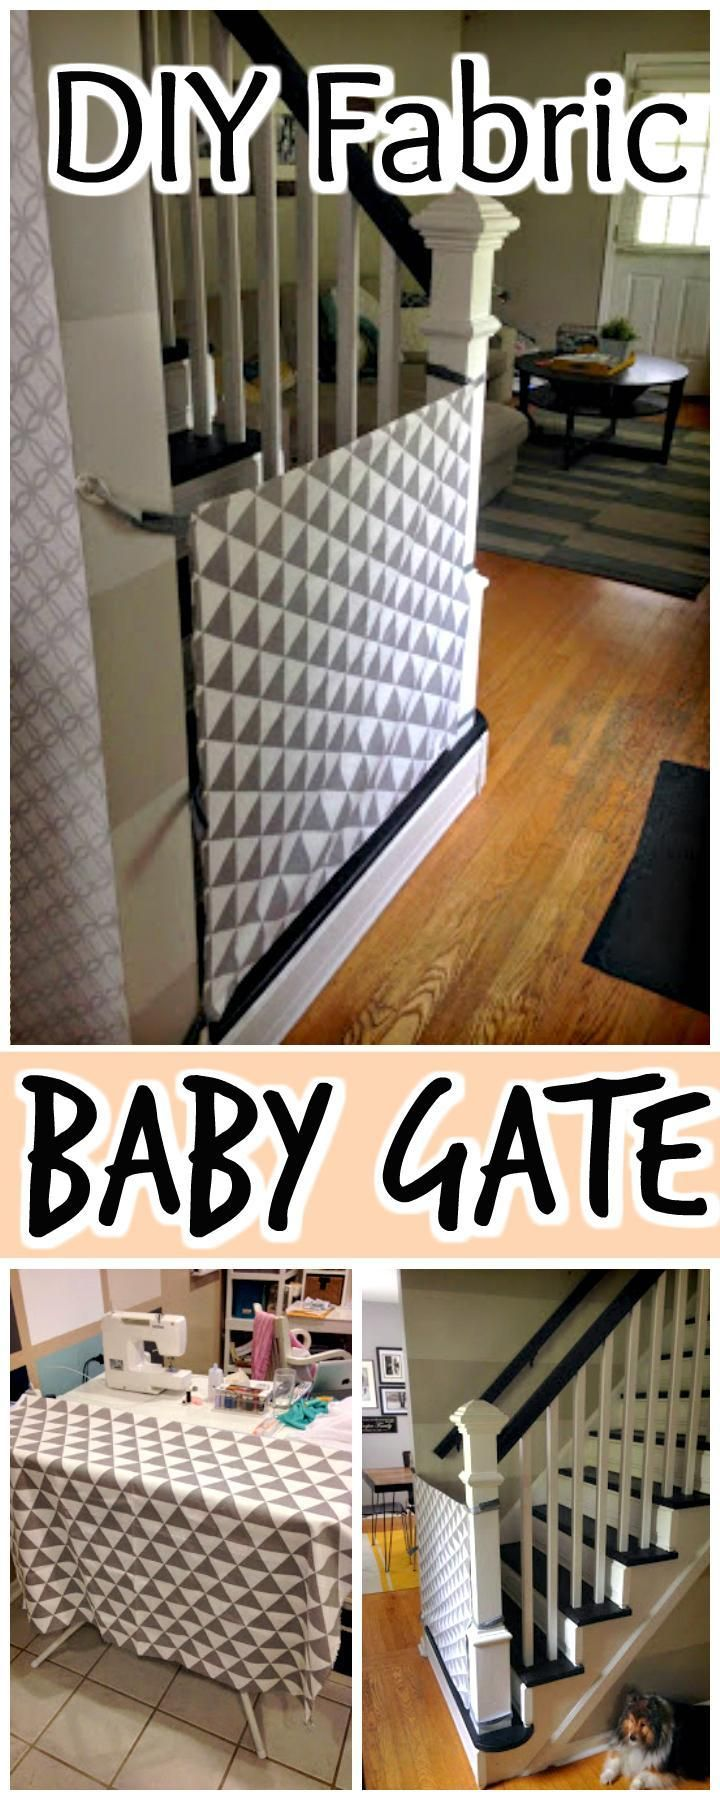 DIY Fabric Baby Gate - 30 Best DIY Baby Gate Tutorials on Cheap Budget | DIY & Crafts